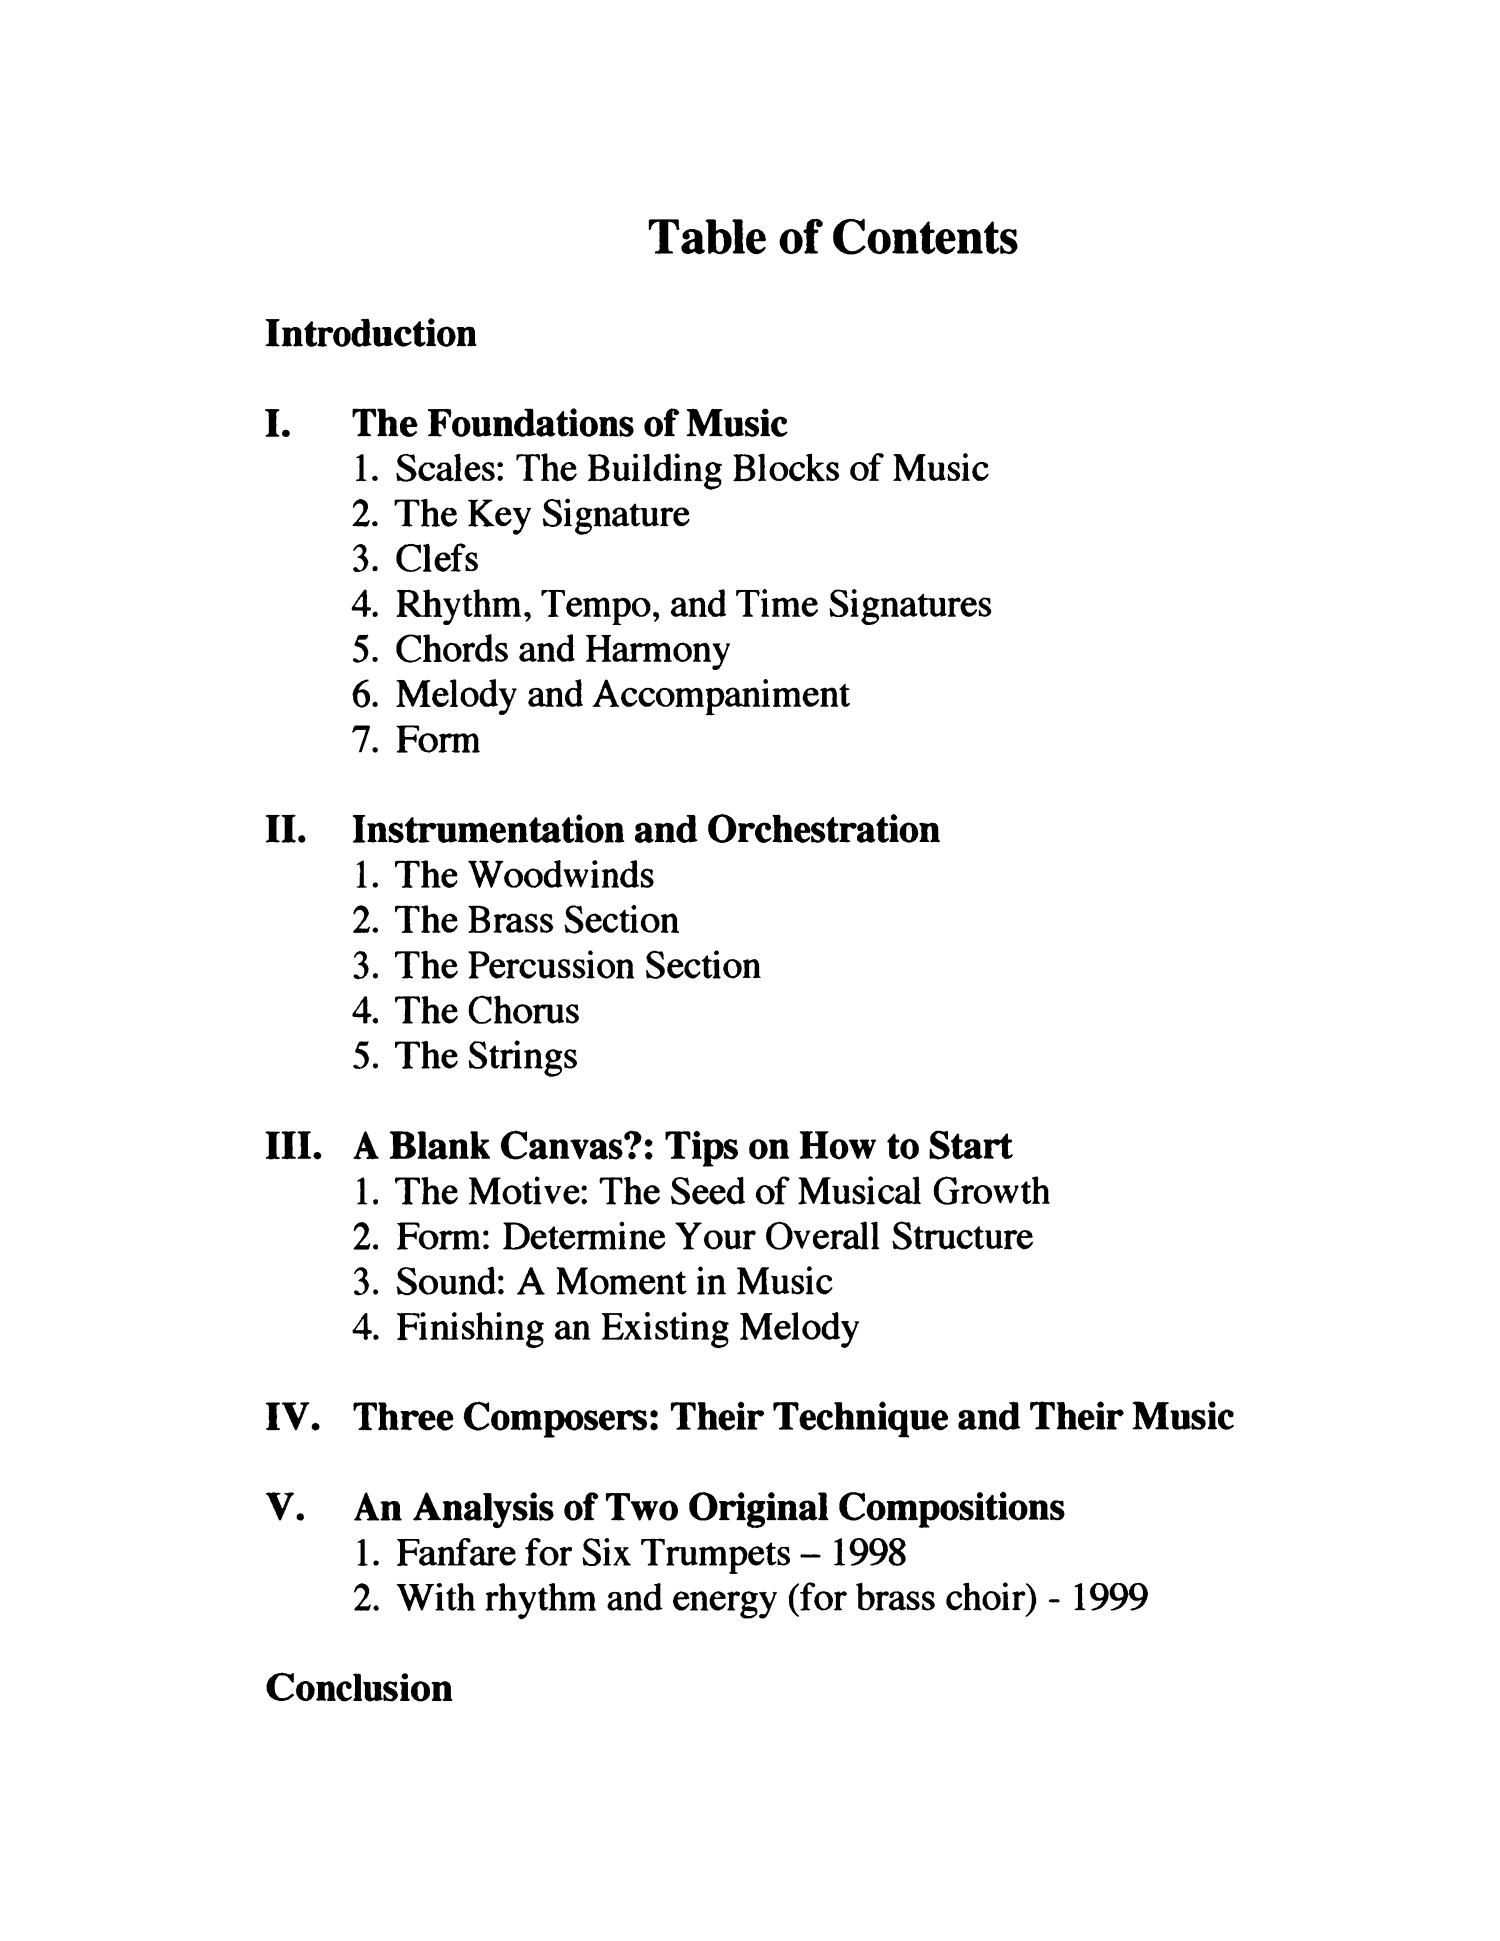 an introduction to the importance of music The art of music composition: an introduction to basic elements, methods, and the importance of modeling as a compositional process, thesis or dissertation, summer 1999 denton, texas.